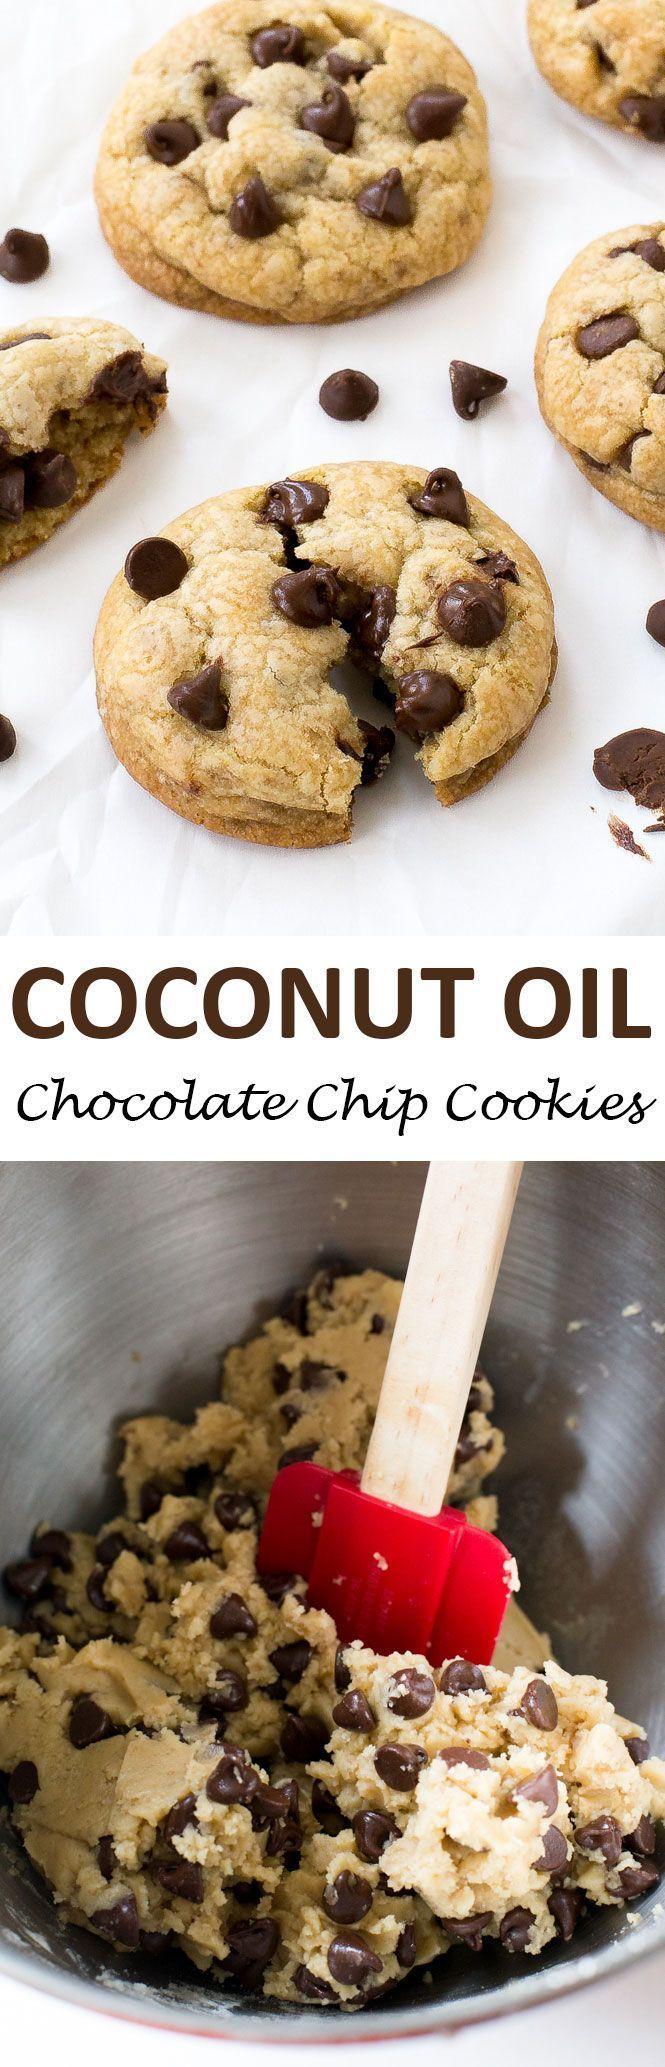 Best 20+ Coconut oil cookies ideas on Pinterest | Dairy free ...